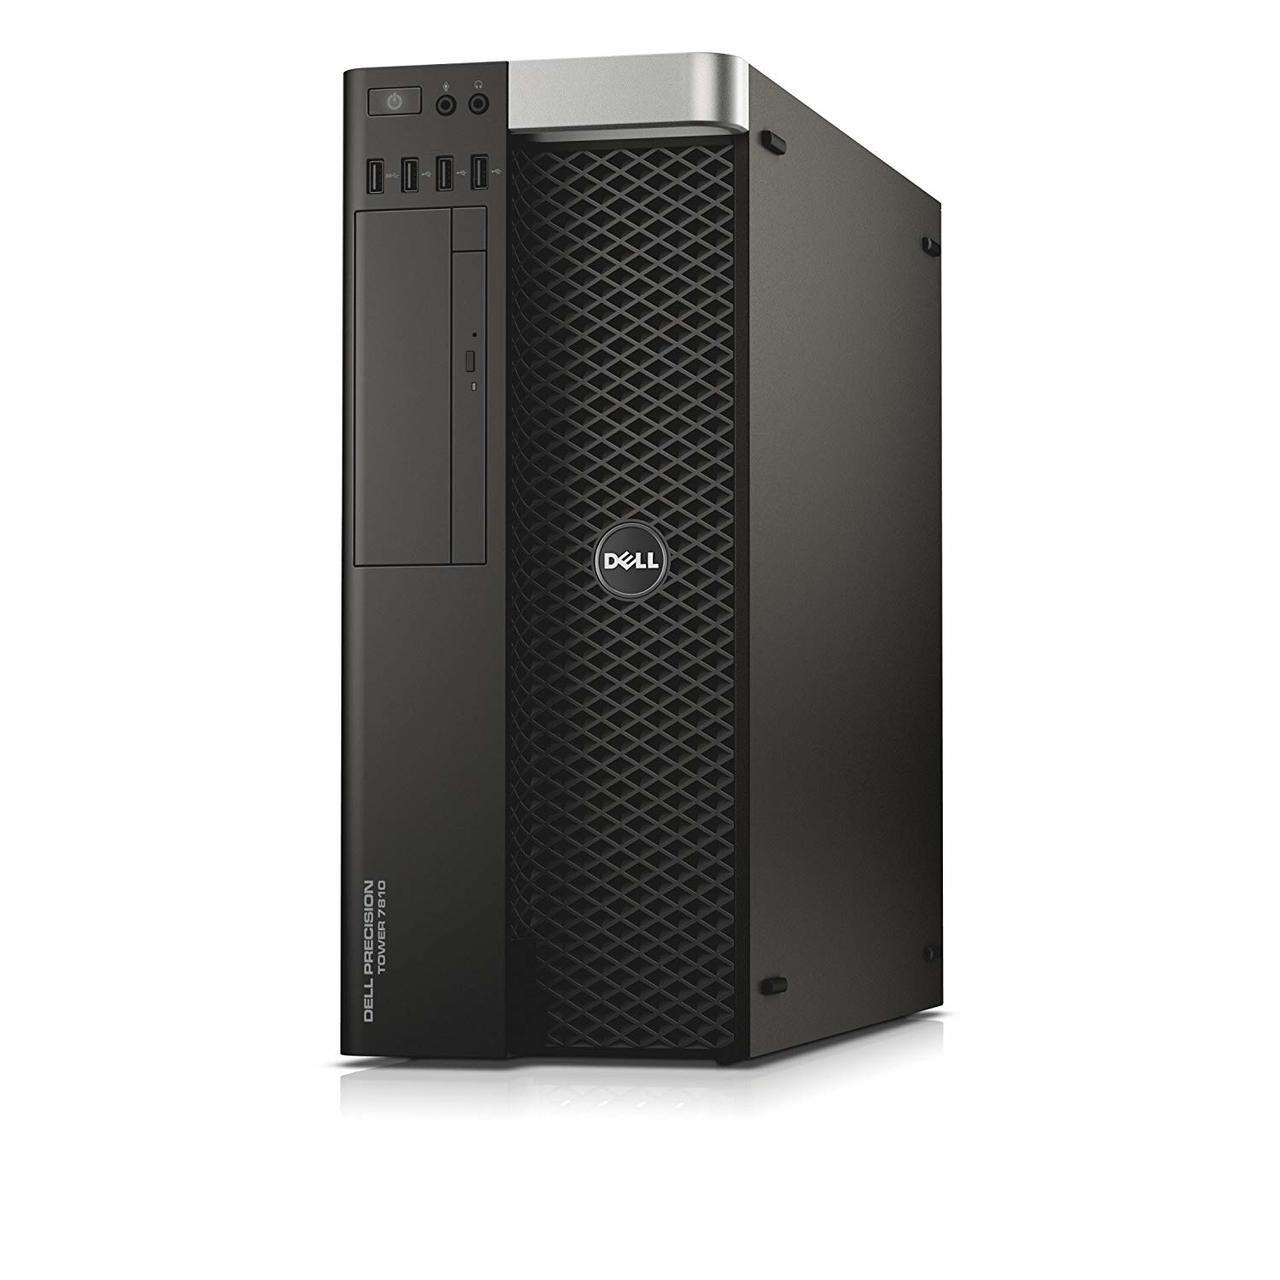 Dell Precision T7810 Tower Dual Six Core Intel Xeon 1.9GHz, 8GB Ram, 500GB HDD, DVD-RW, Windows 10 Pro 64 Desktop Computer